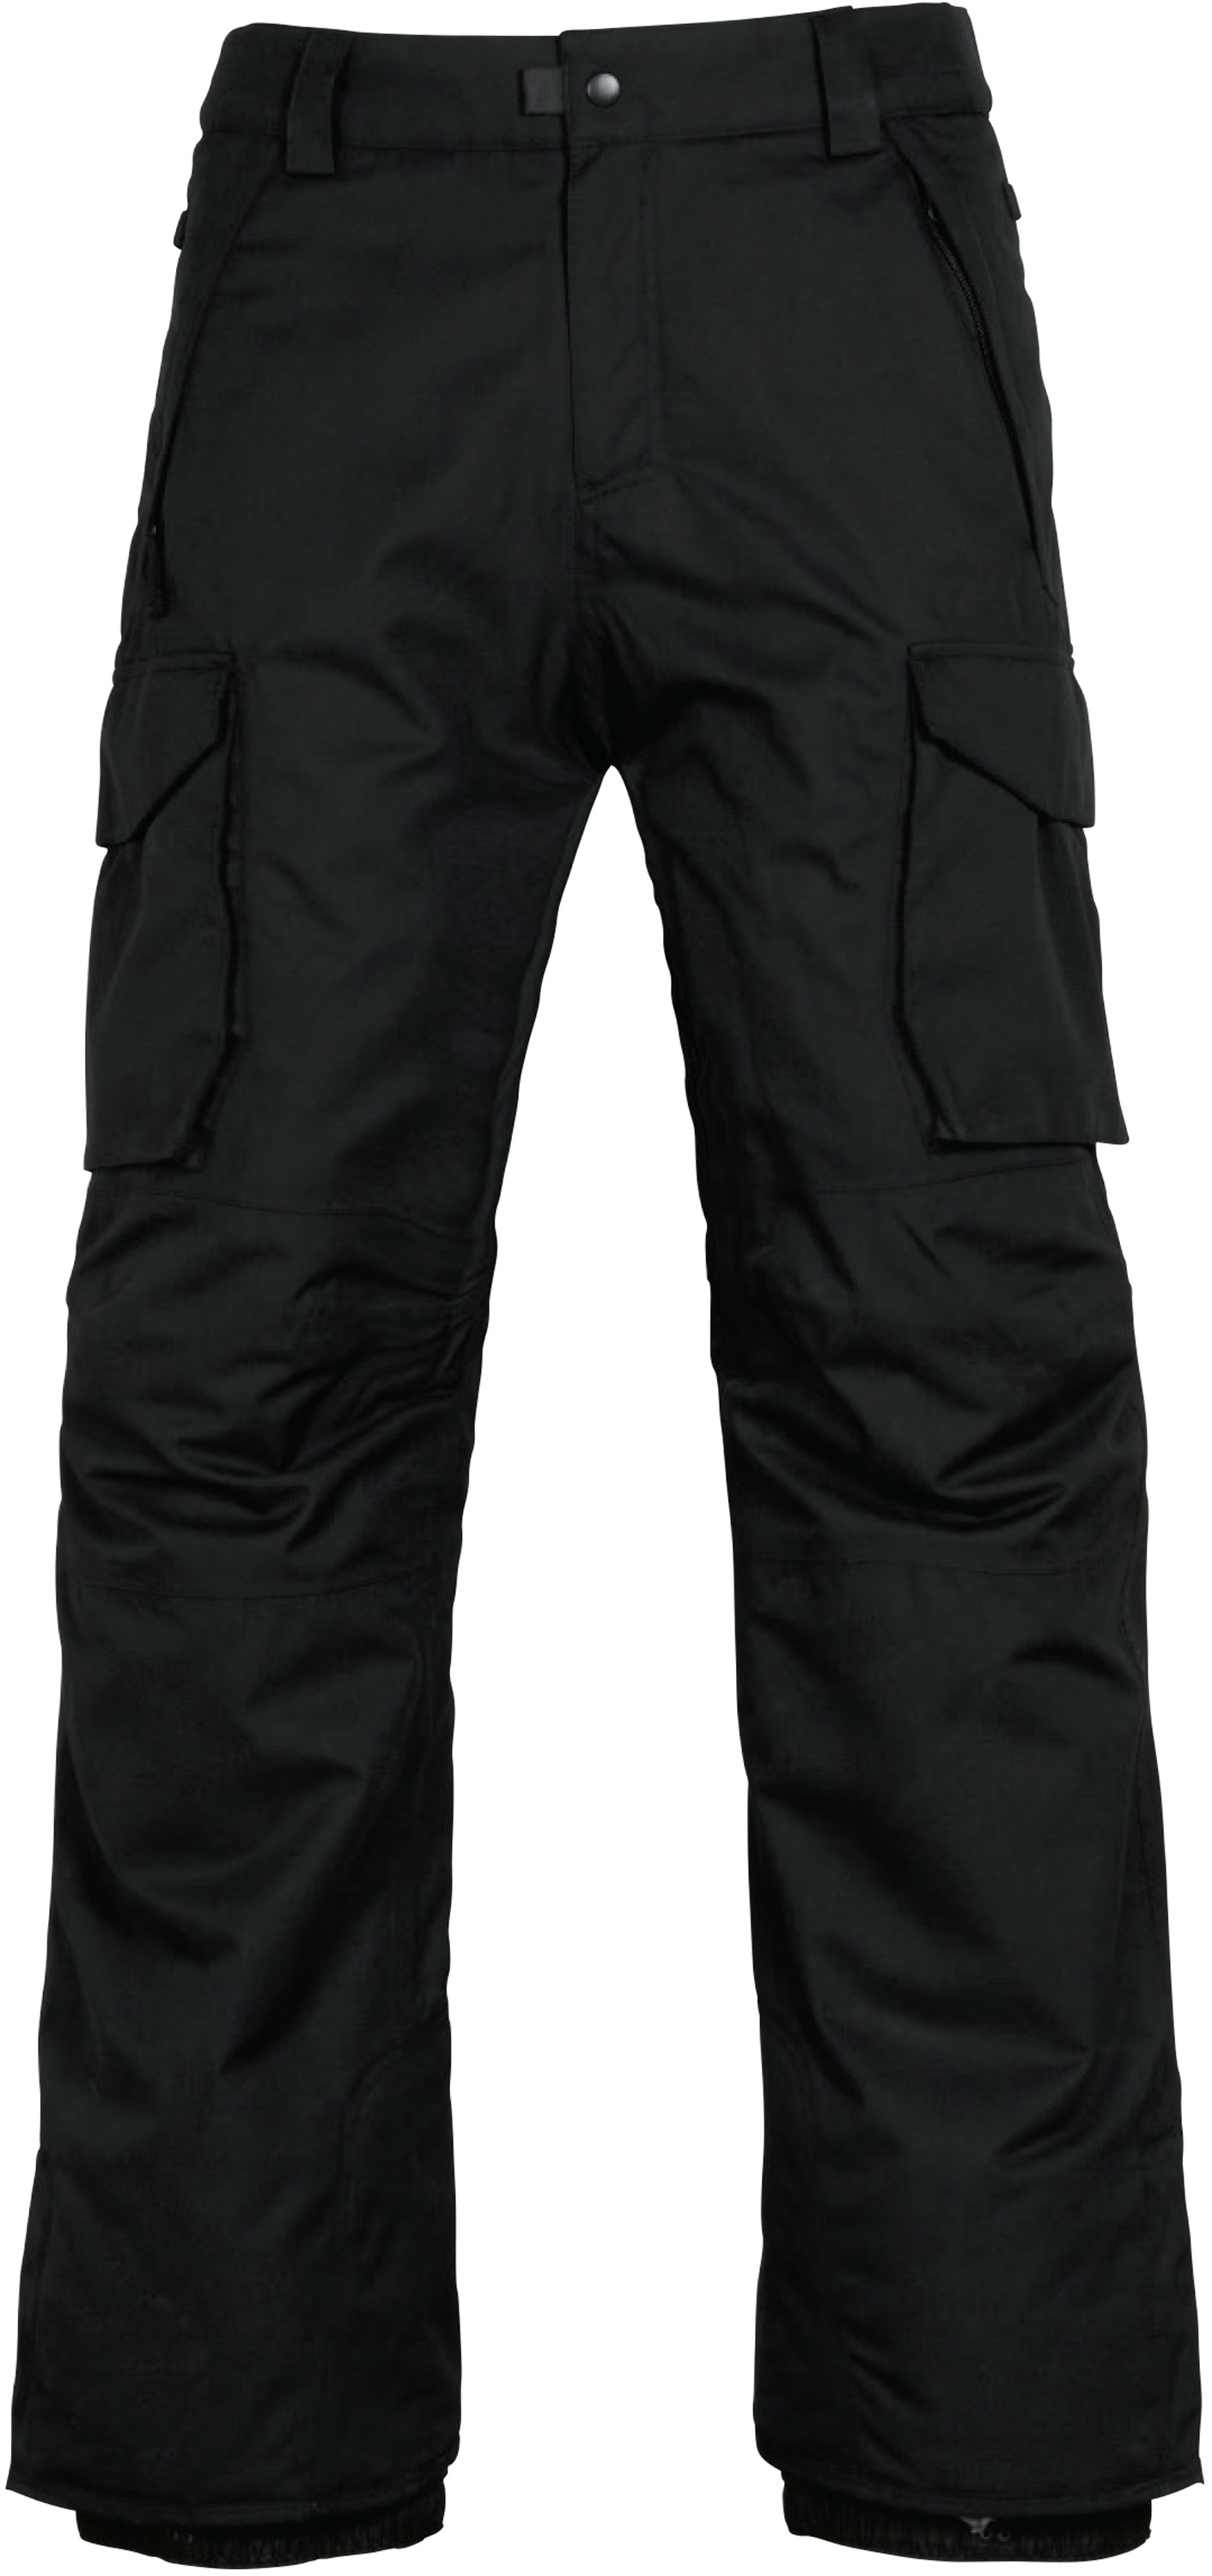 686 Infinity Insulated Cargo Snowboard Pant 2018